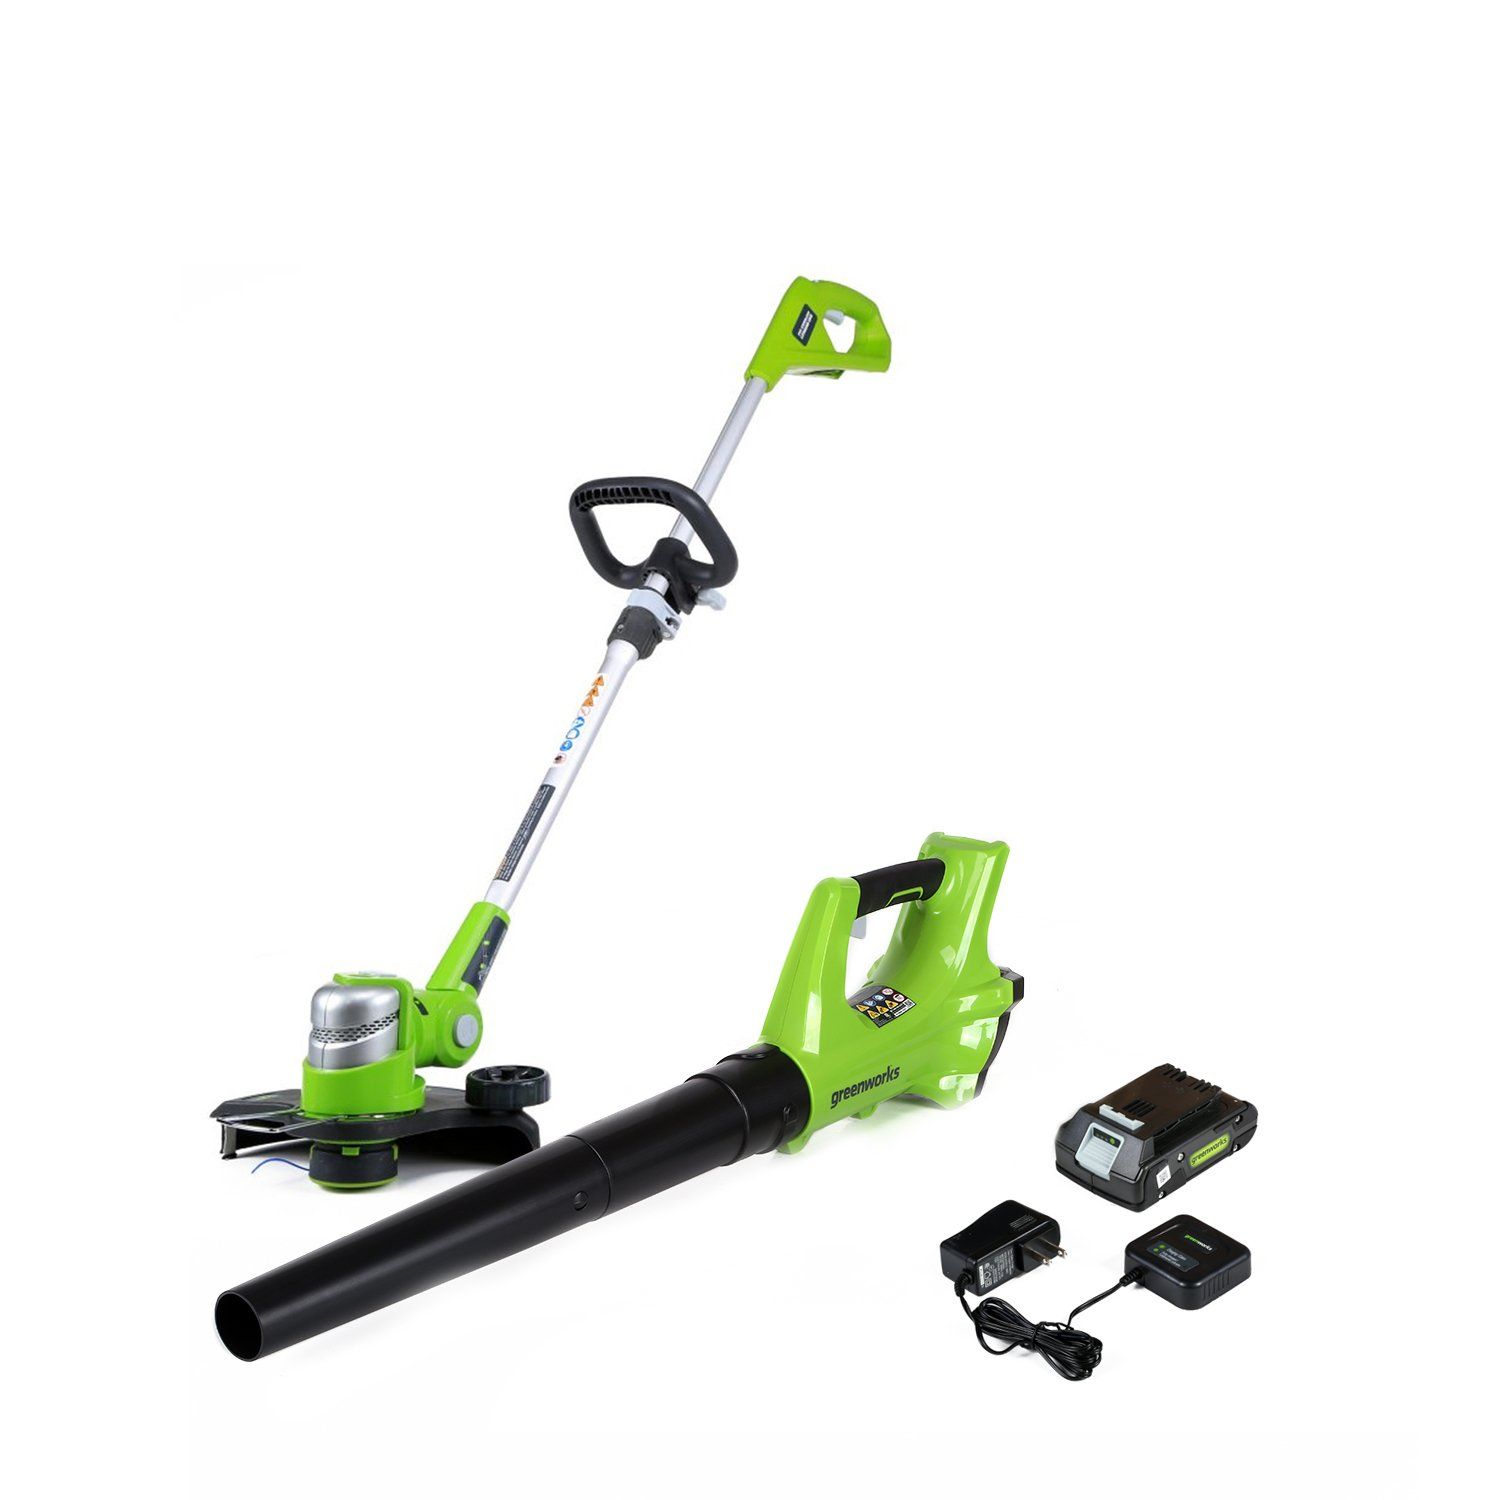 Greenworks 24V Cordless String Trimmer & Blower Combo Pack, 2.0Ah Battery and Charger Included STBA24B210